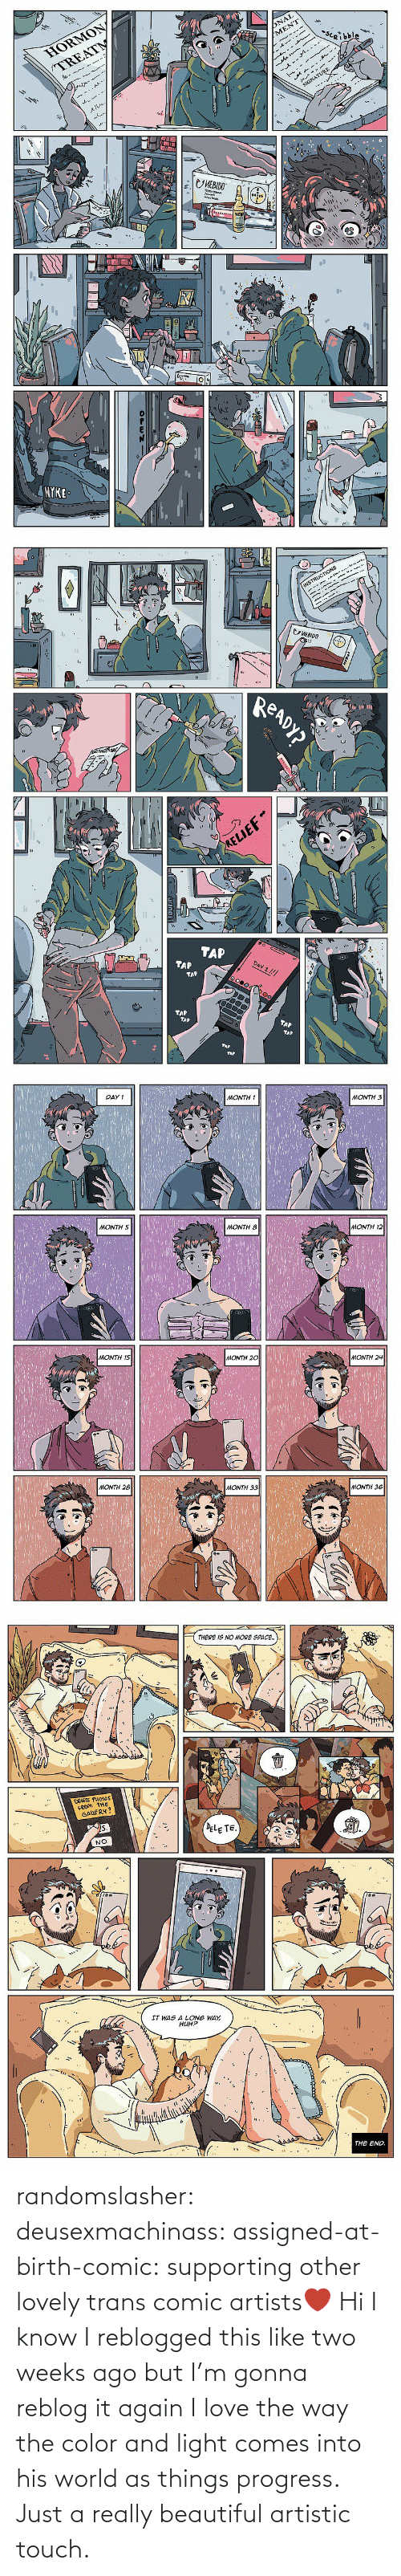 trans: randomslasher: deusexmachinass:  assigned-at-birth-comic: supporting other lovely trans comic artists❤  Hi I know I reblogged this like two weeks ago but I'm gonna reblog it again  I love the way the color and light comes into his world as things progress. Just a really beautiful artistic touch.